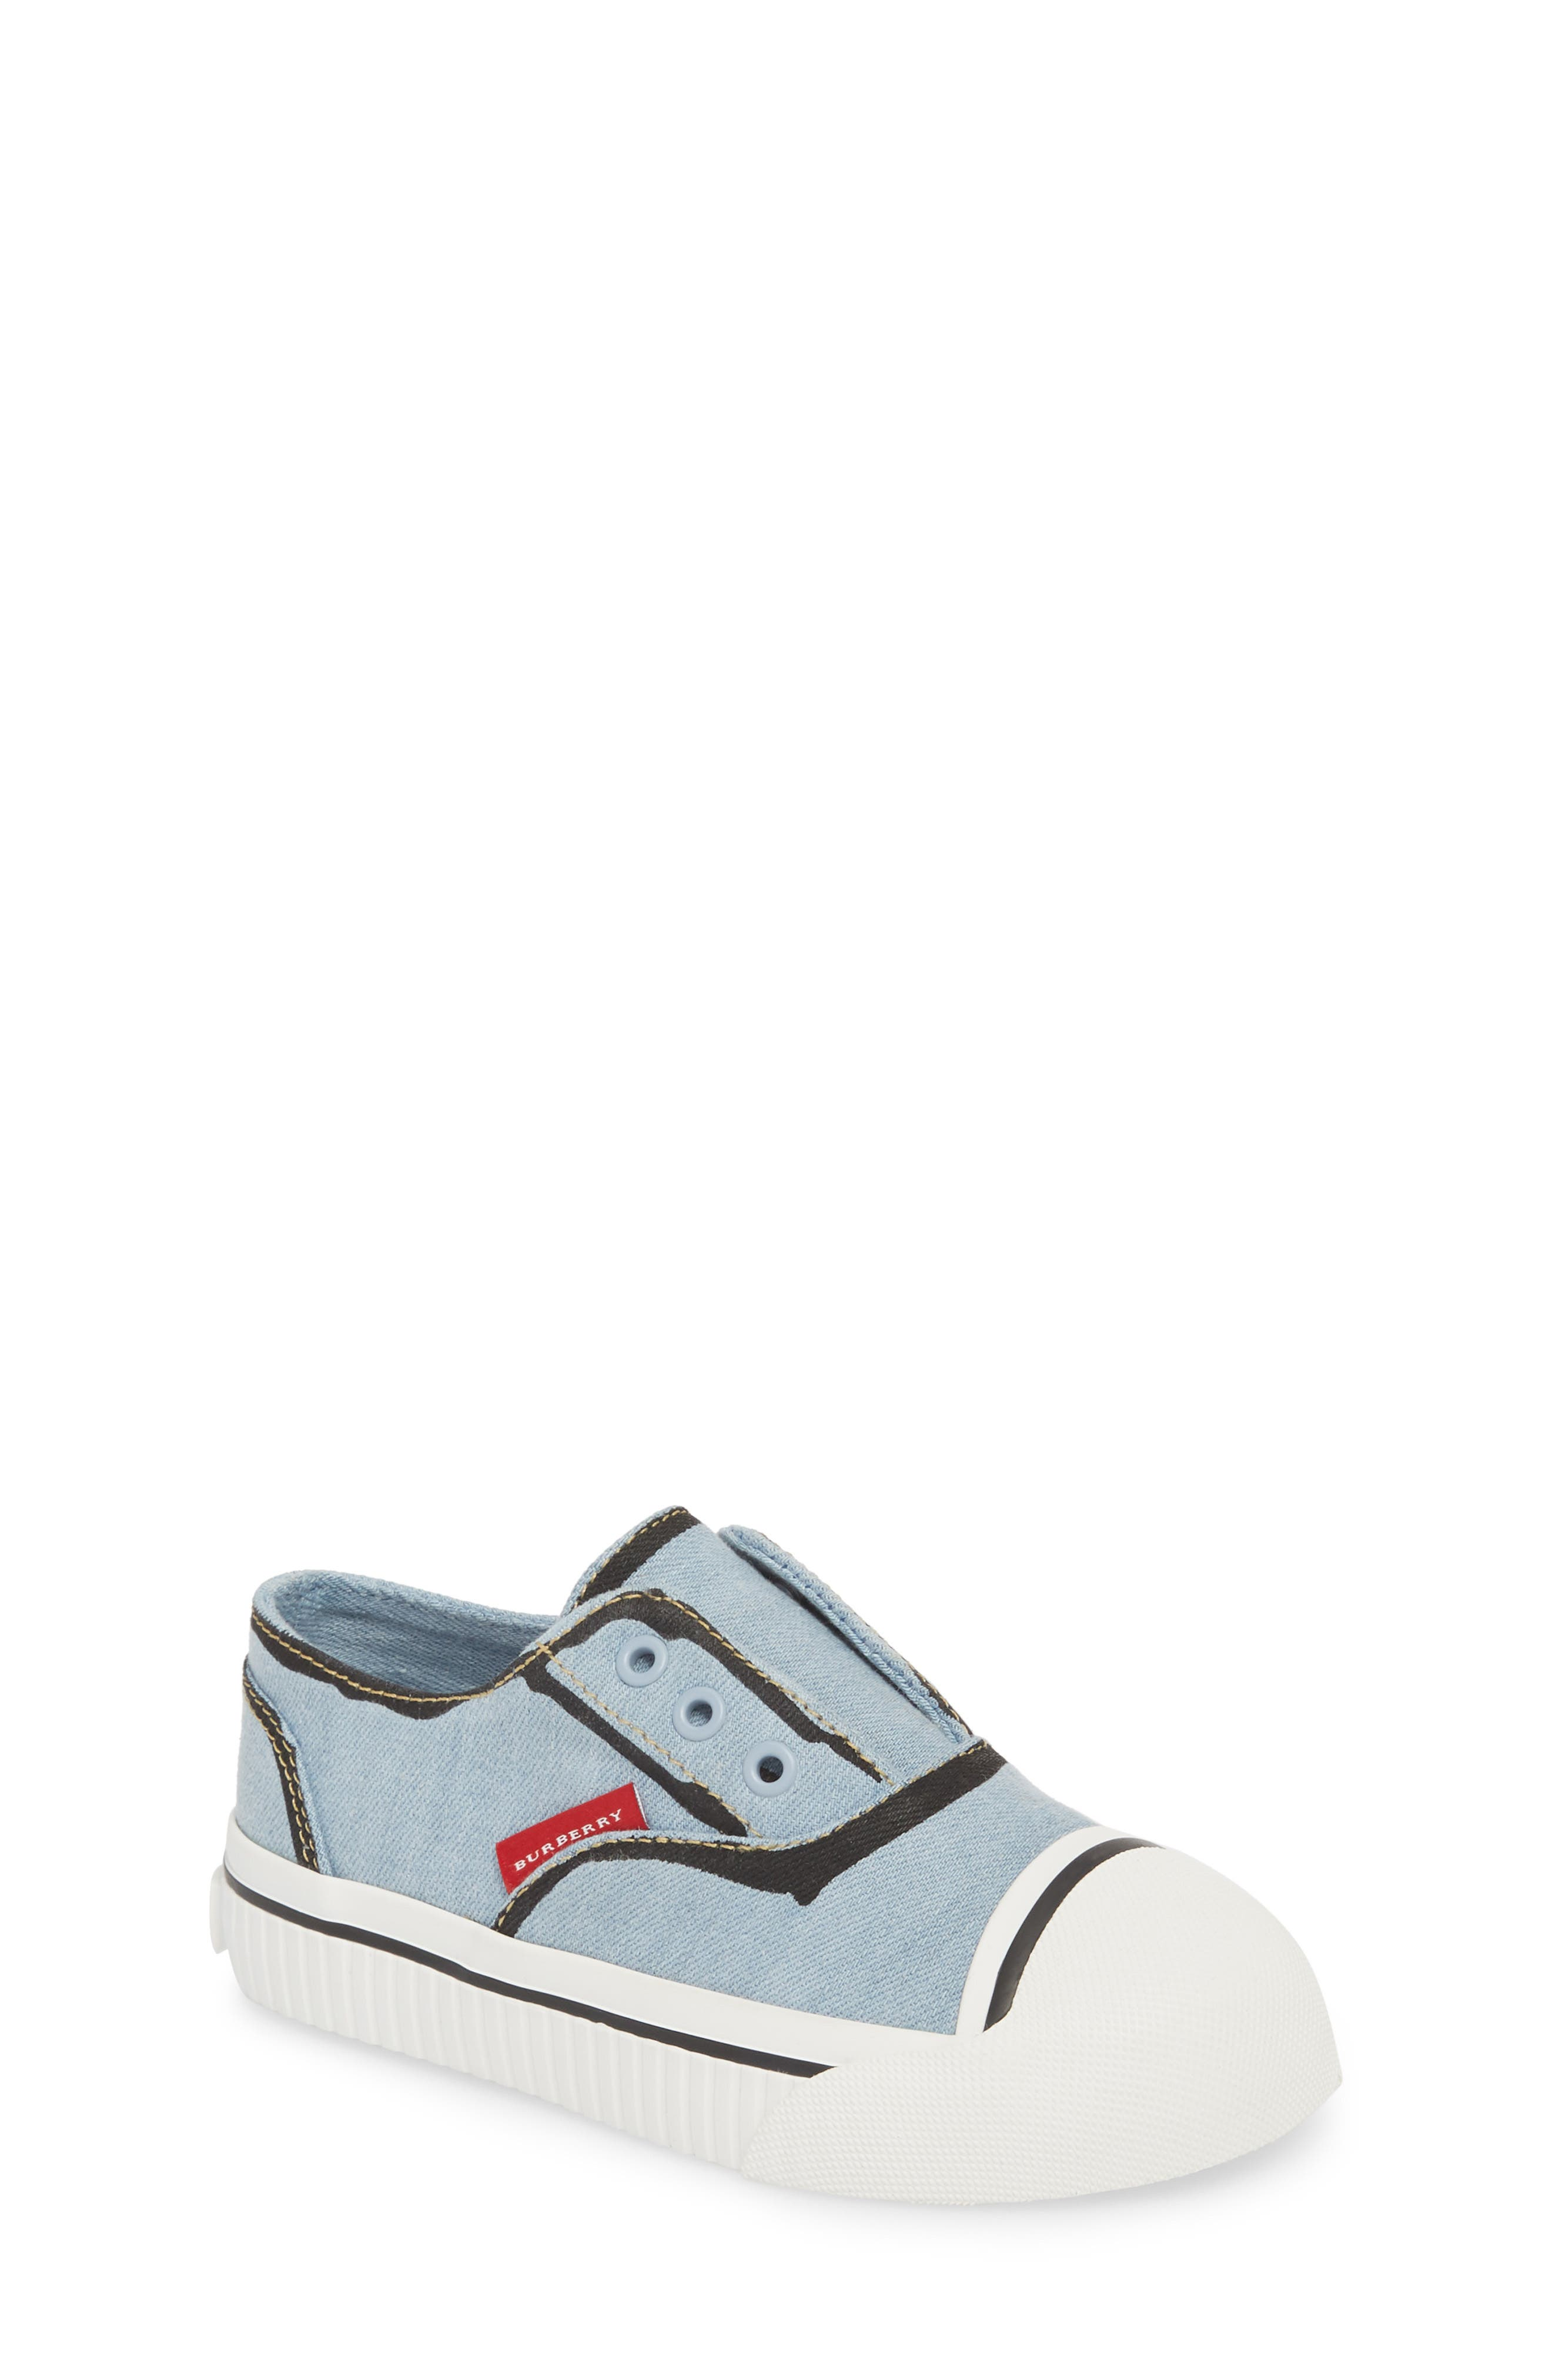 Burberry Lipton Slip-On Sneaker (Walker & Toddler)